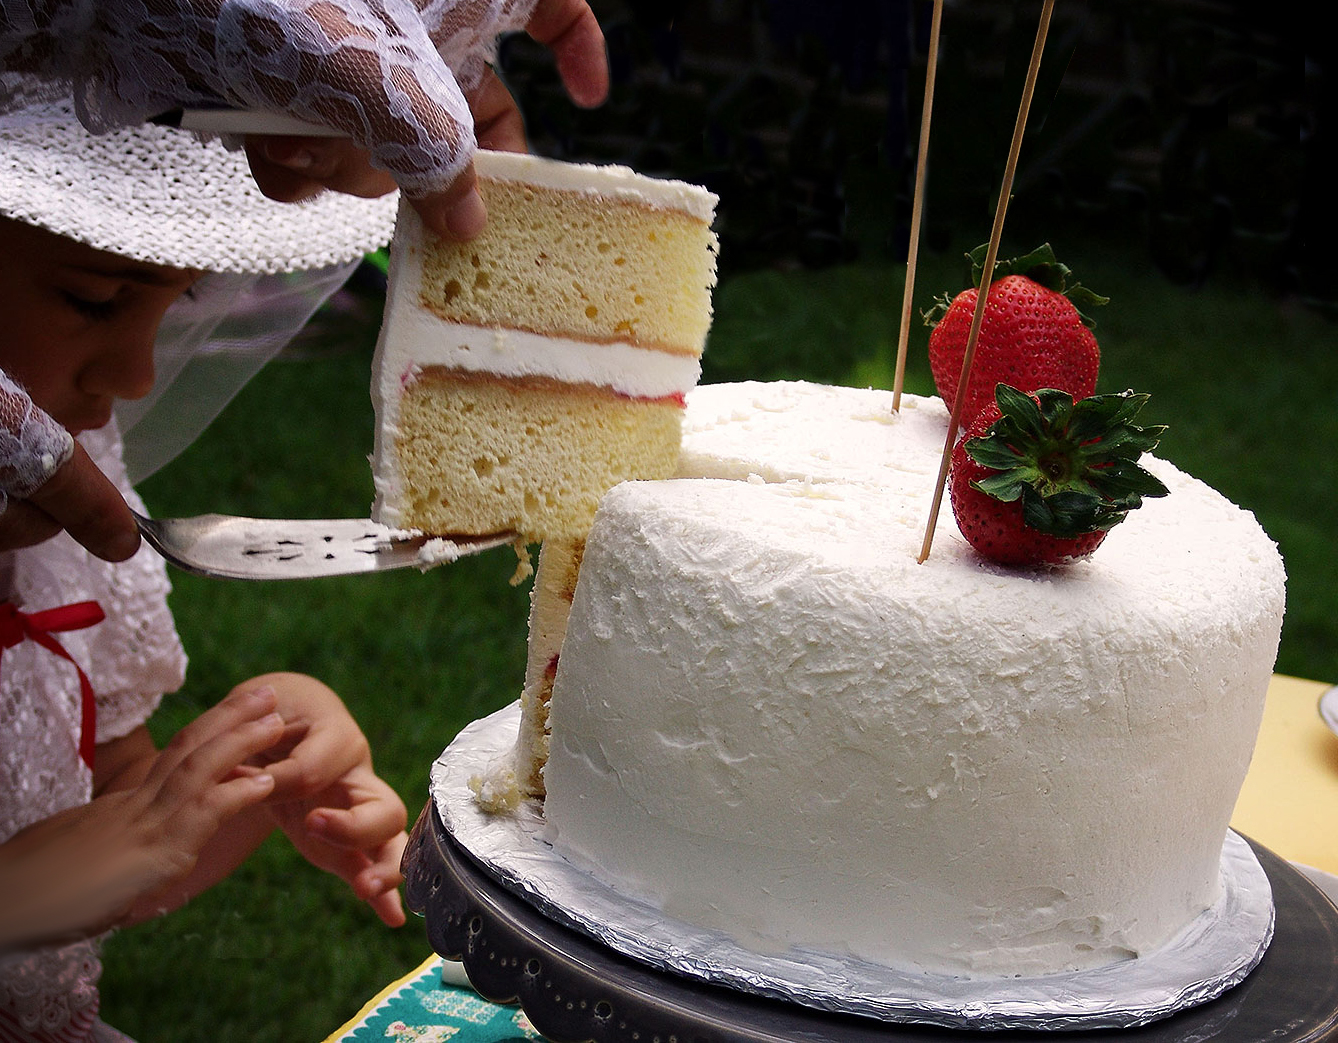 Mary Poppins Birthday Party: A slice of Victoria Sponge Cake